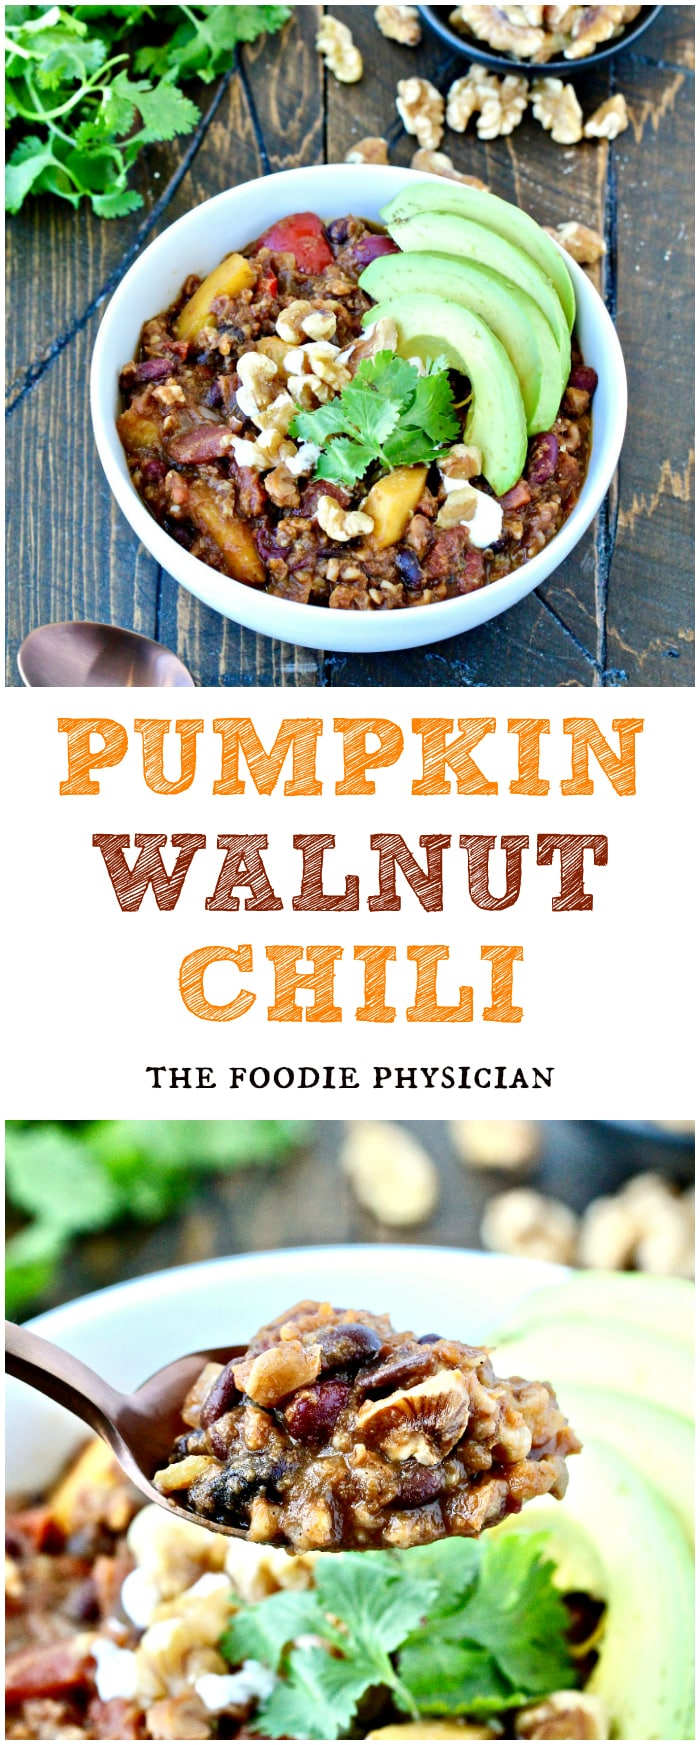 Whether you're making dinner for the family or feeding a crowd, a hearty bowl of this Pumpkin Walnut Chili is sure to be a hit! #TeamGoodFat | @foodiephysician